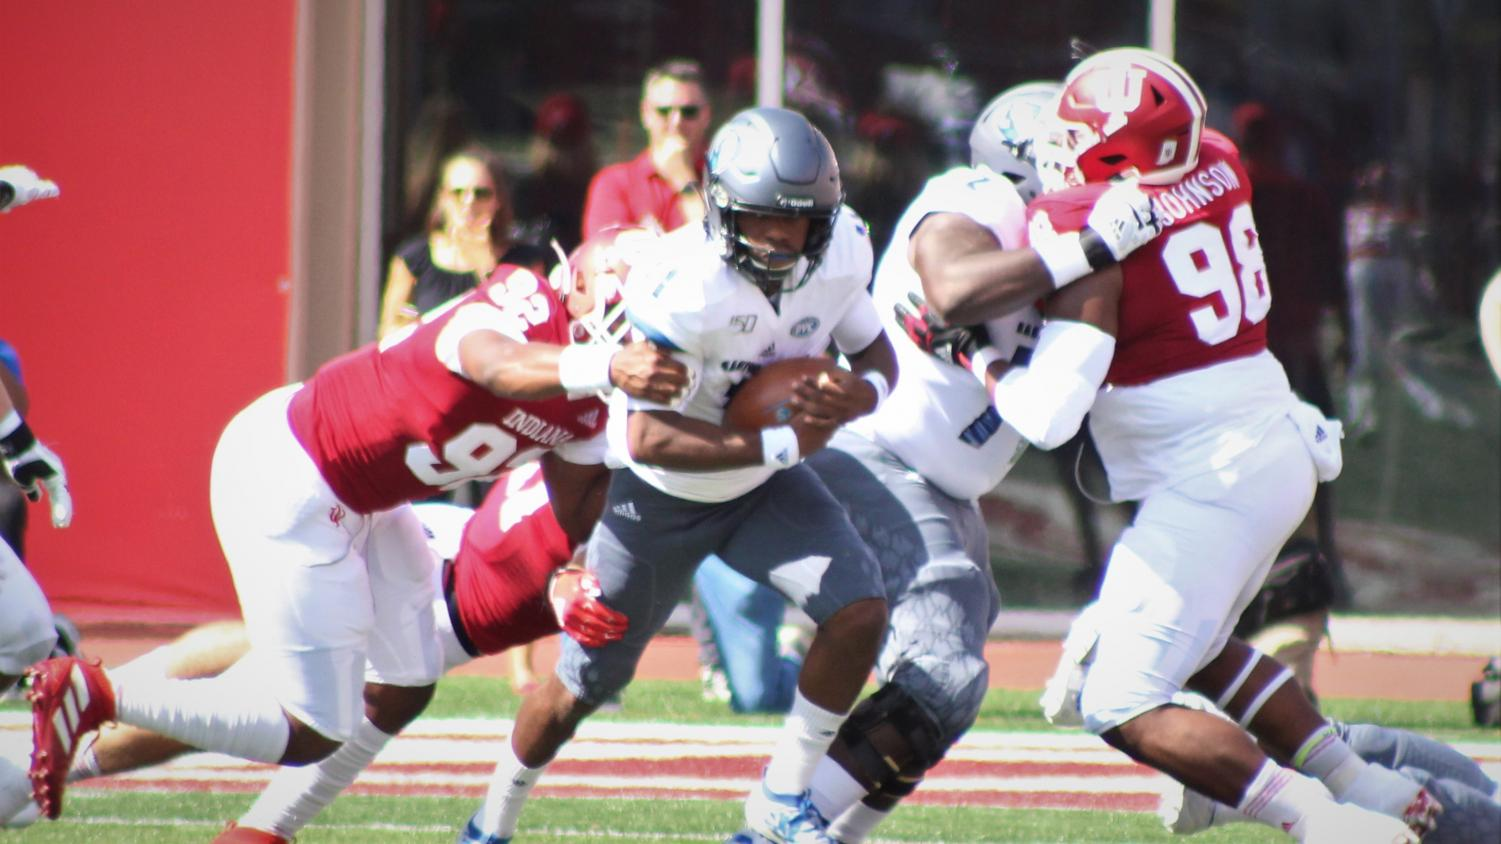 Eastern quarterback Johnathan Brantley tries to escape pressure in Eastern's 52-0 loss to Indiana on Saturday. Brantley was sacked twice in the game.